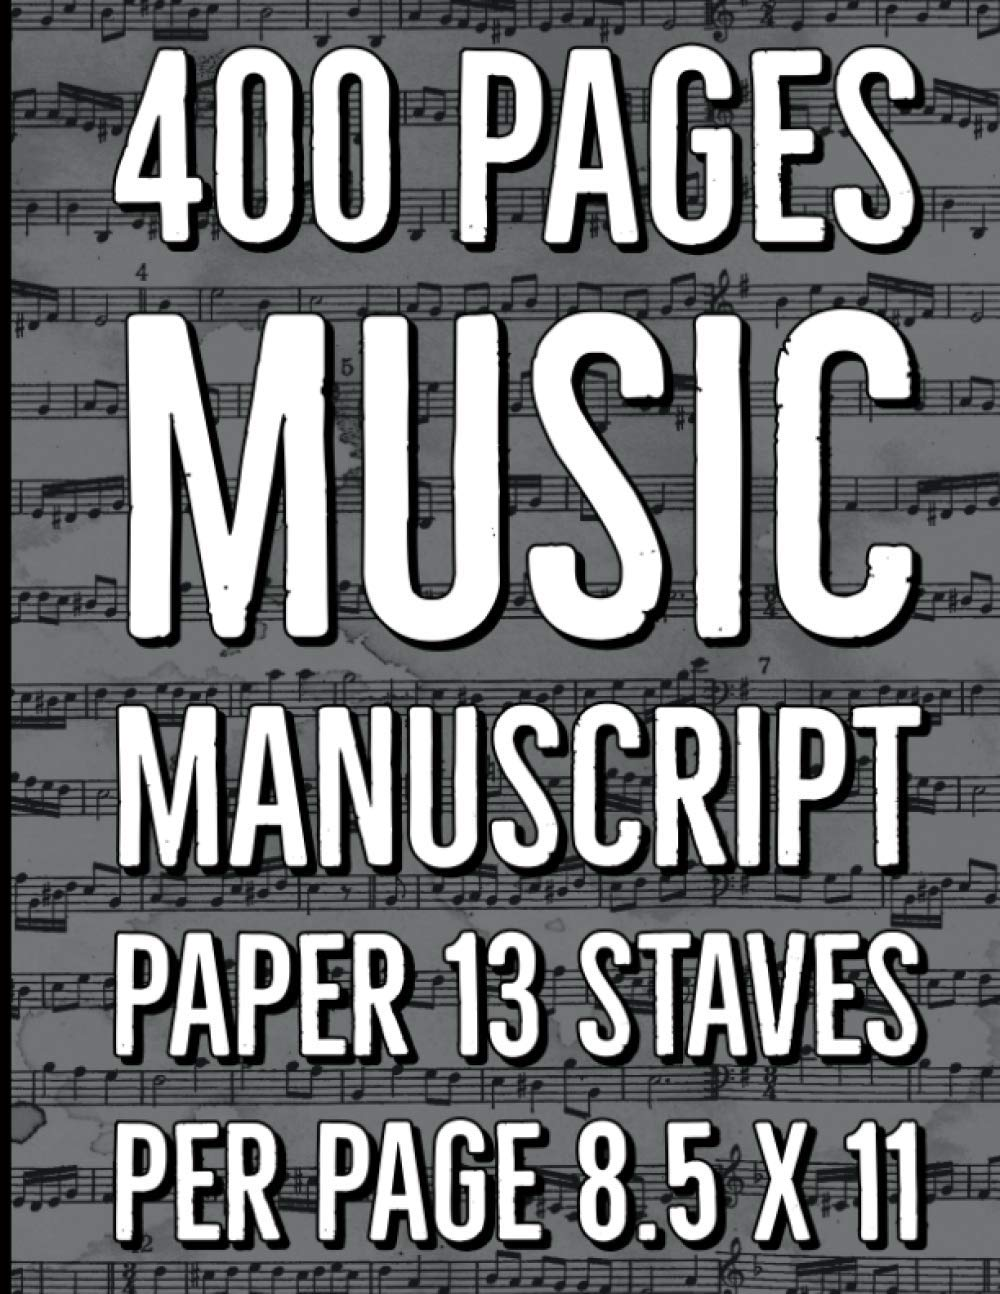 400 pages music manuscript paper 13 staves per page 8,5 x 11: Very big blank sheet music notebook for music theory. For student or teacher of music school or conservatory.